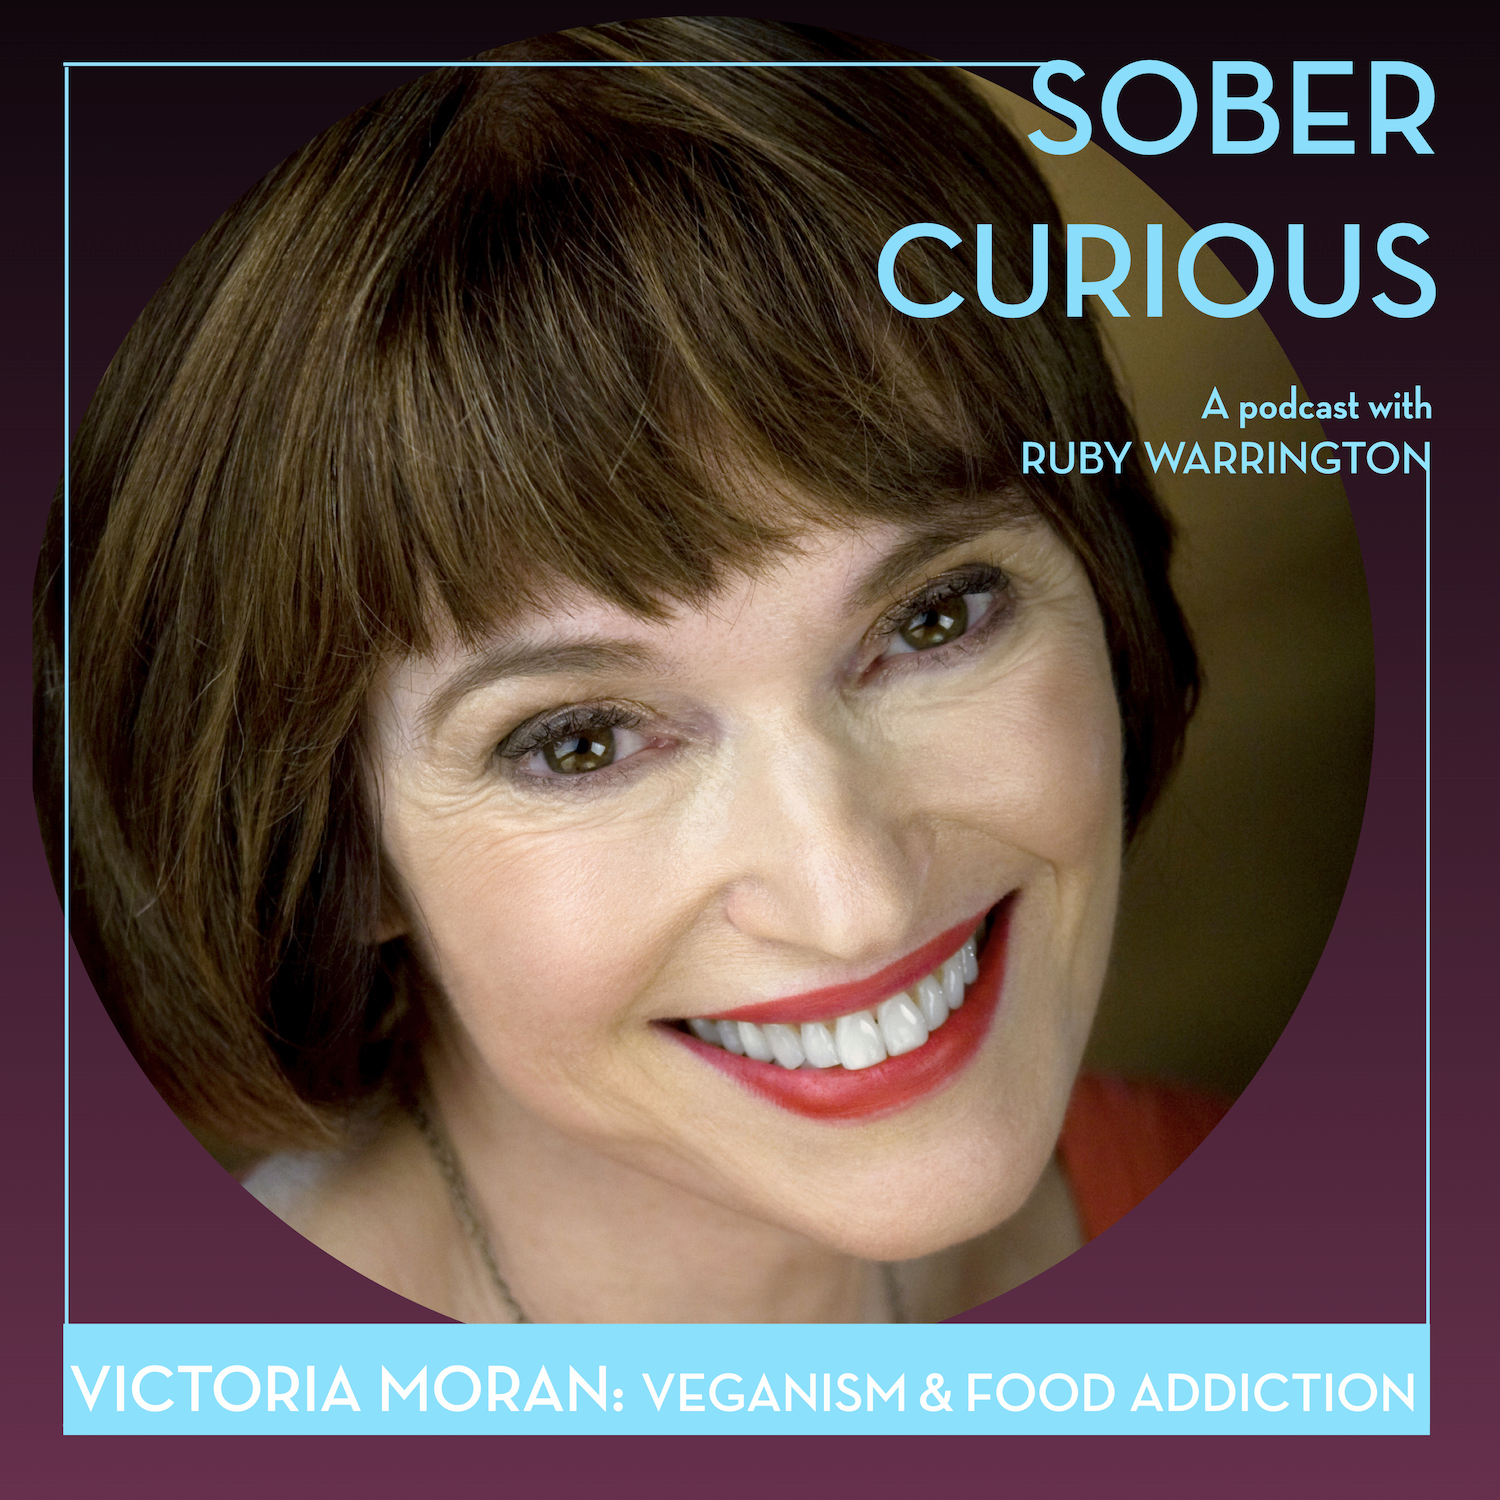 Victoria Moran veganism food addiction sober curious podcast ruby warrington